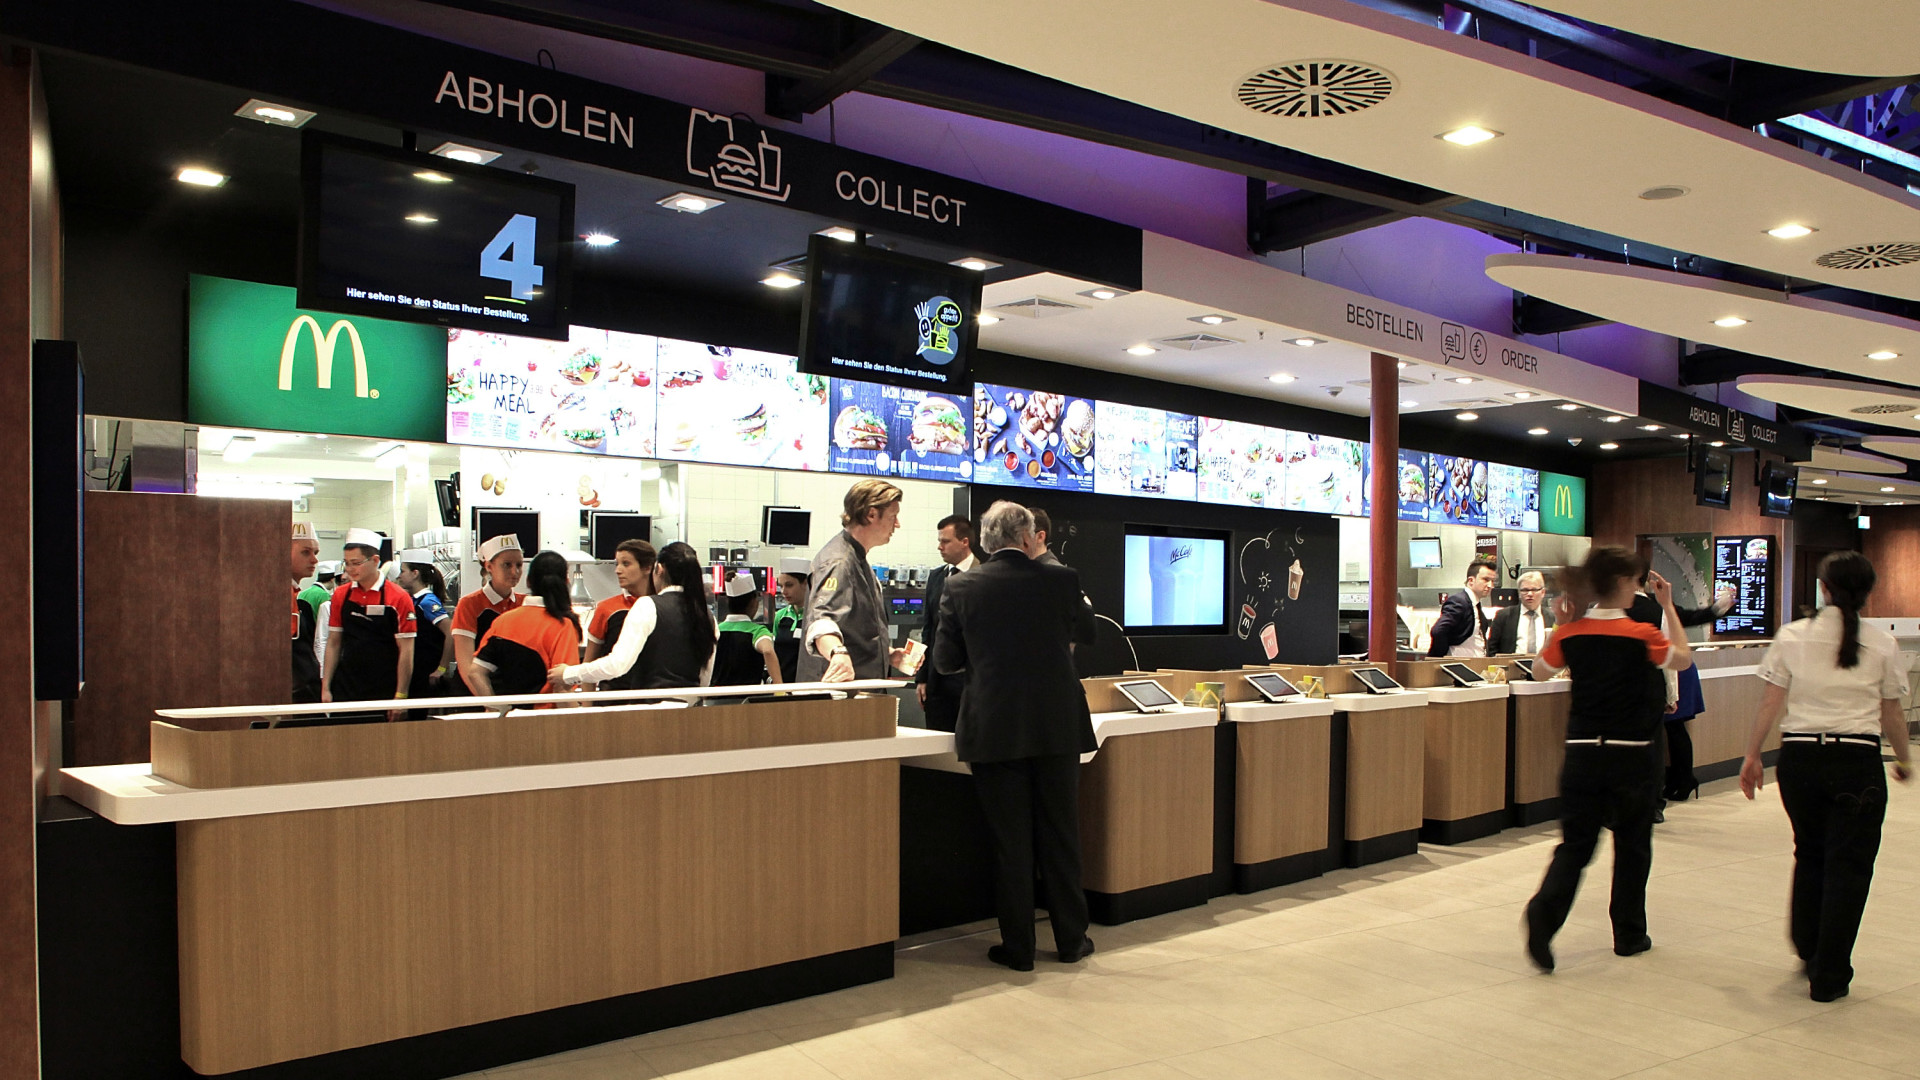 Under a new global structure, McDonald's is grouping markets in Germany where a new McDonald's Flagship Restaurant opened in March, with other high-performing countries such as Australia and Canada.